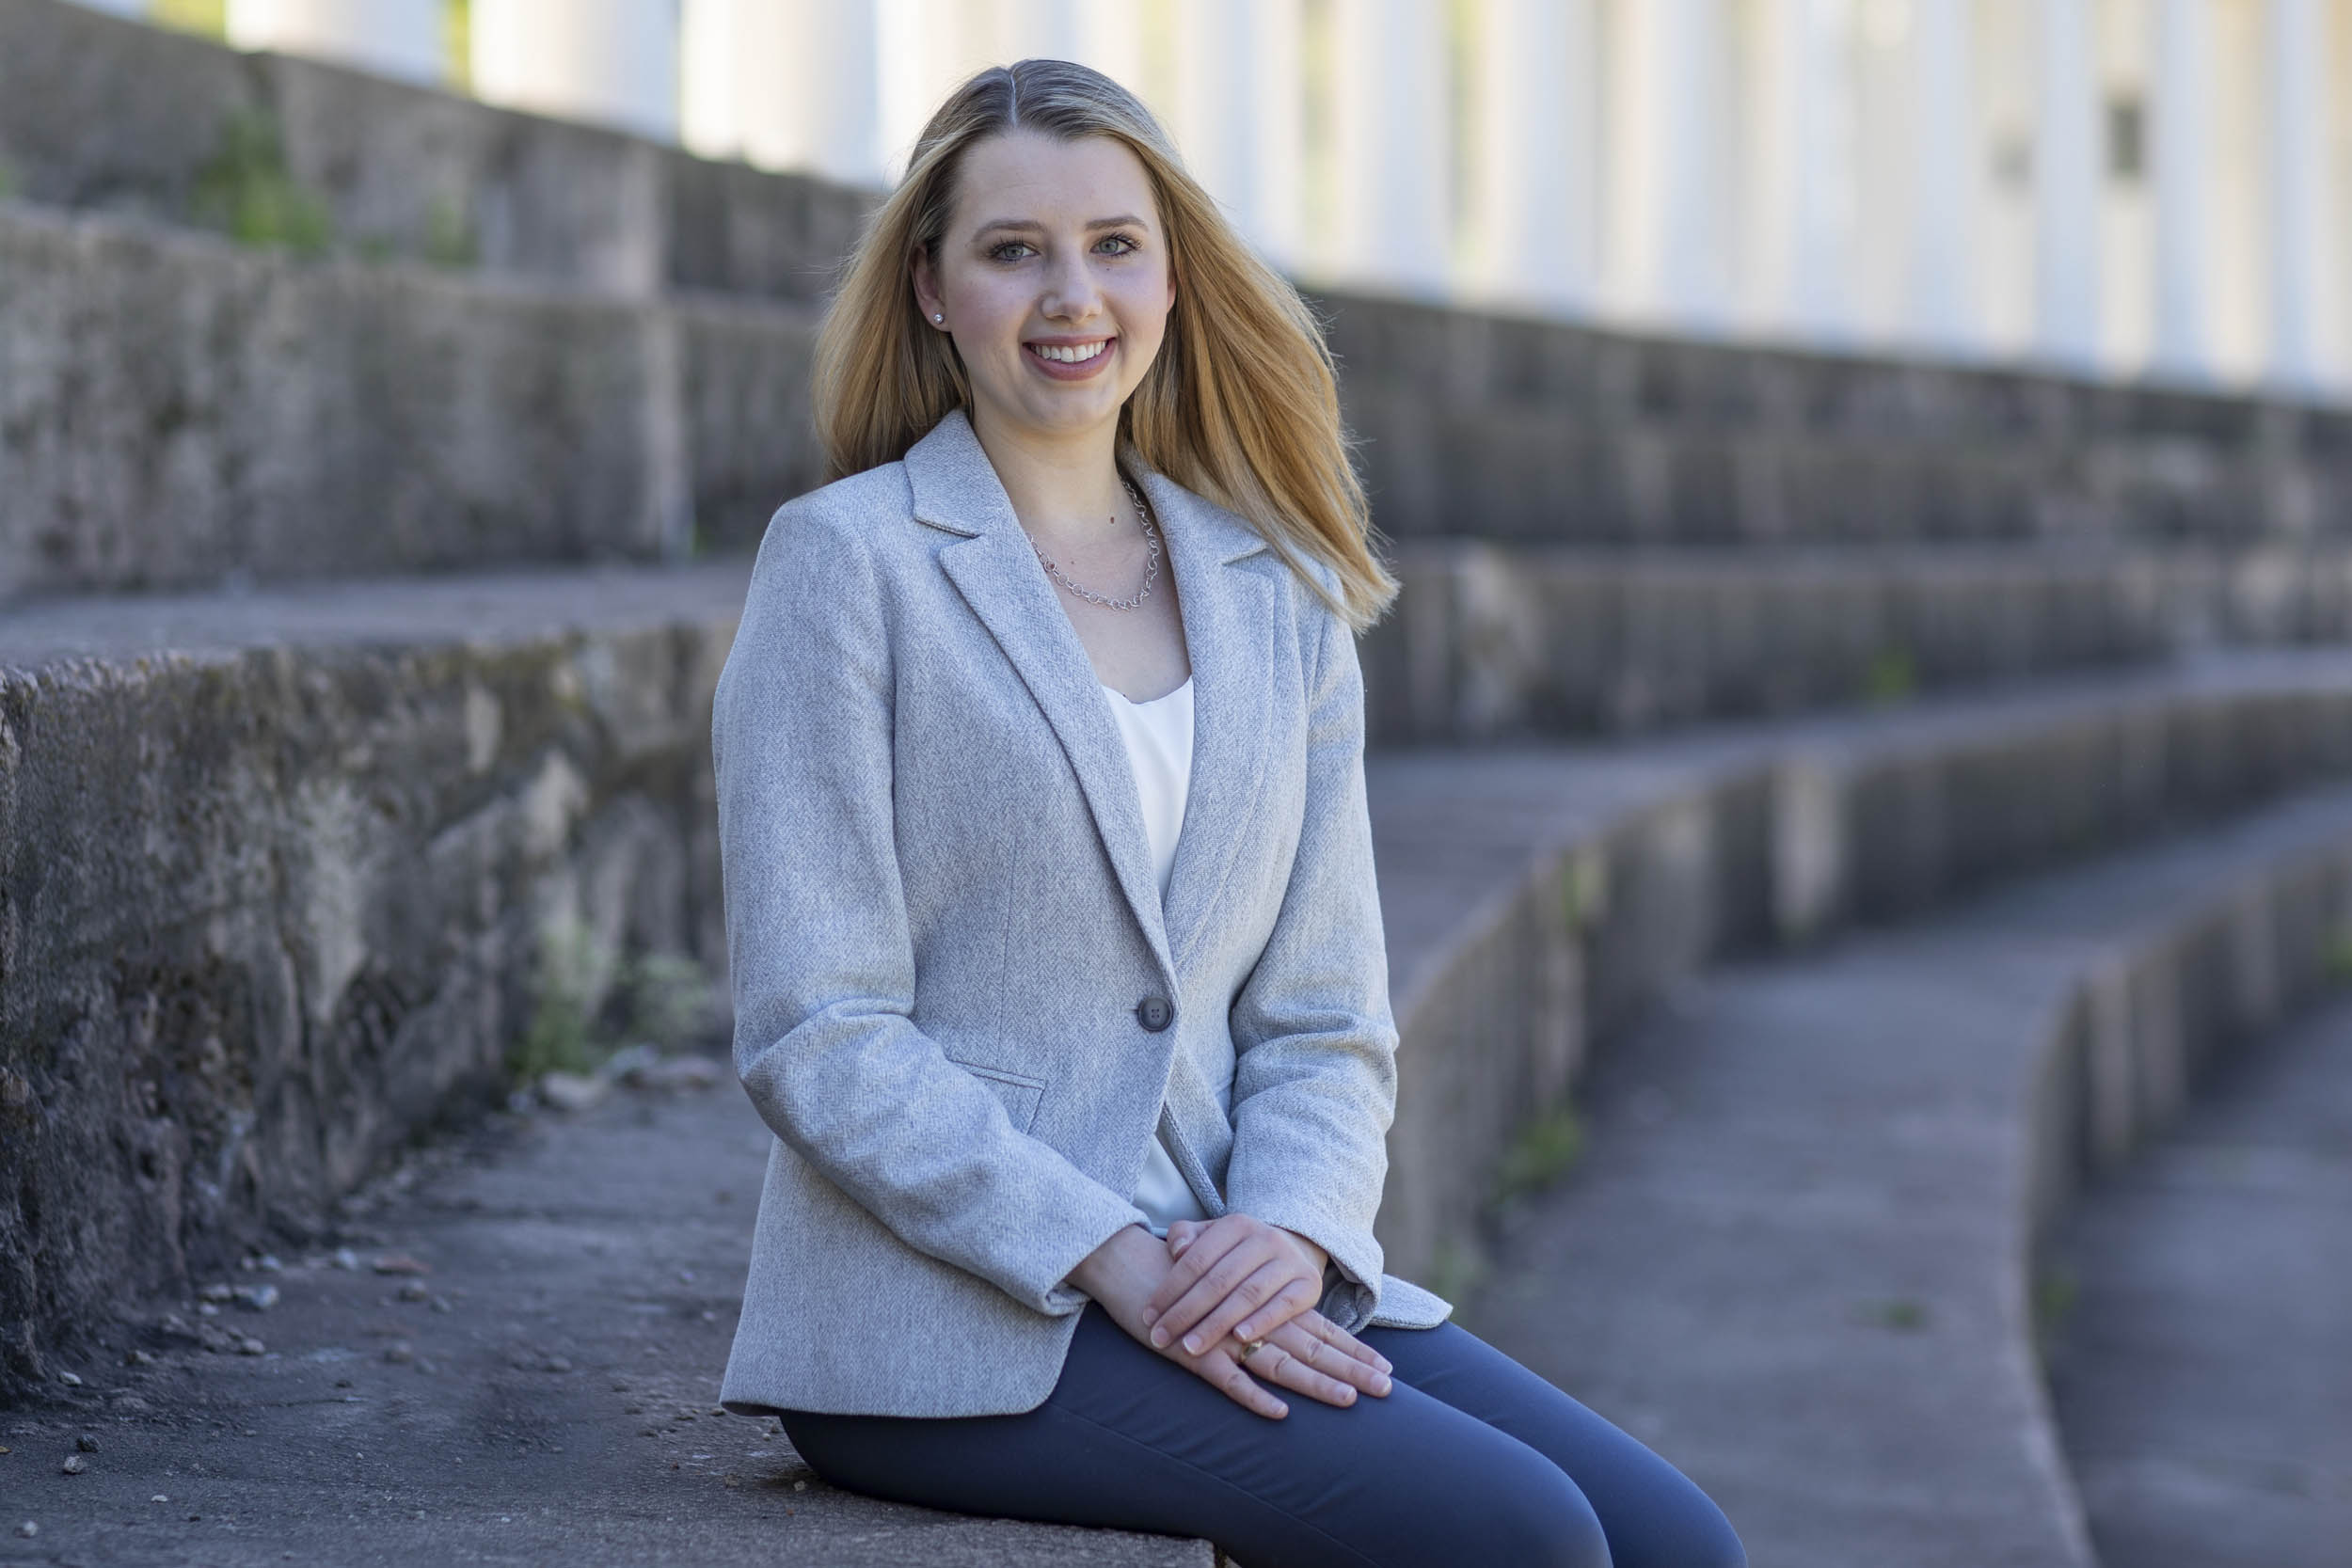 Having found the way to continue ballet, Alexander applied to and will earn her undergraduate degree from the Batten School of Leadership and Public Policy.